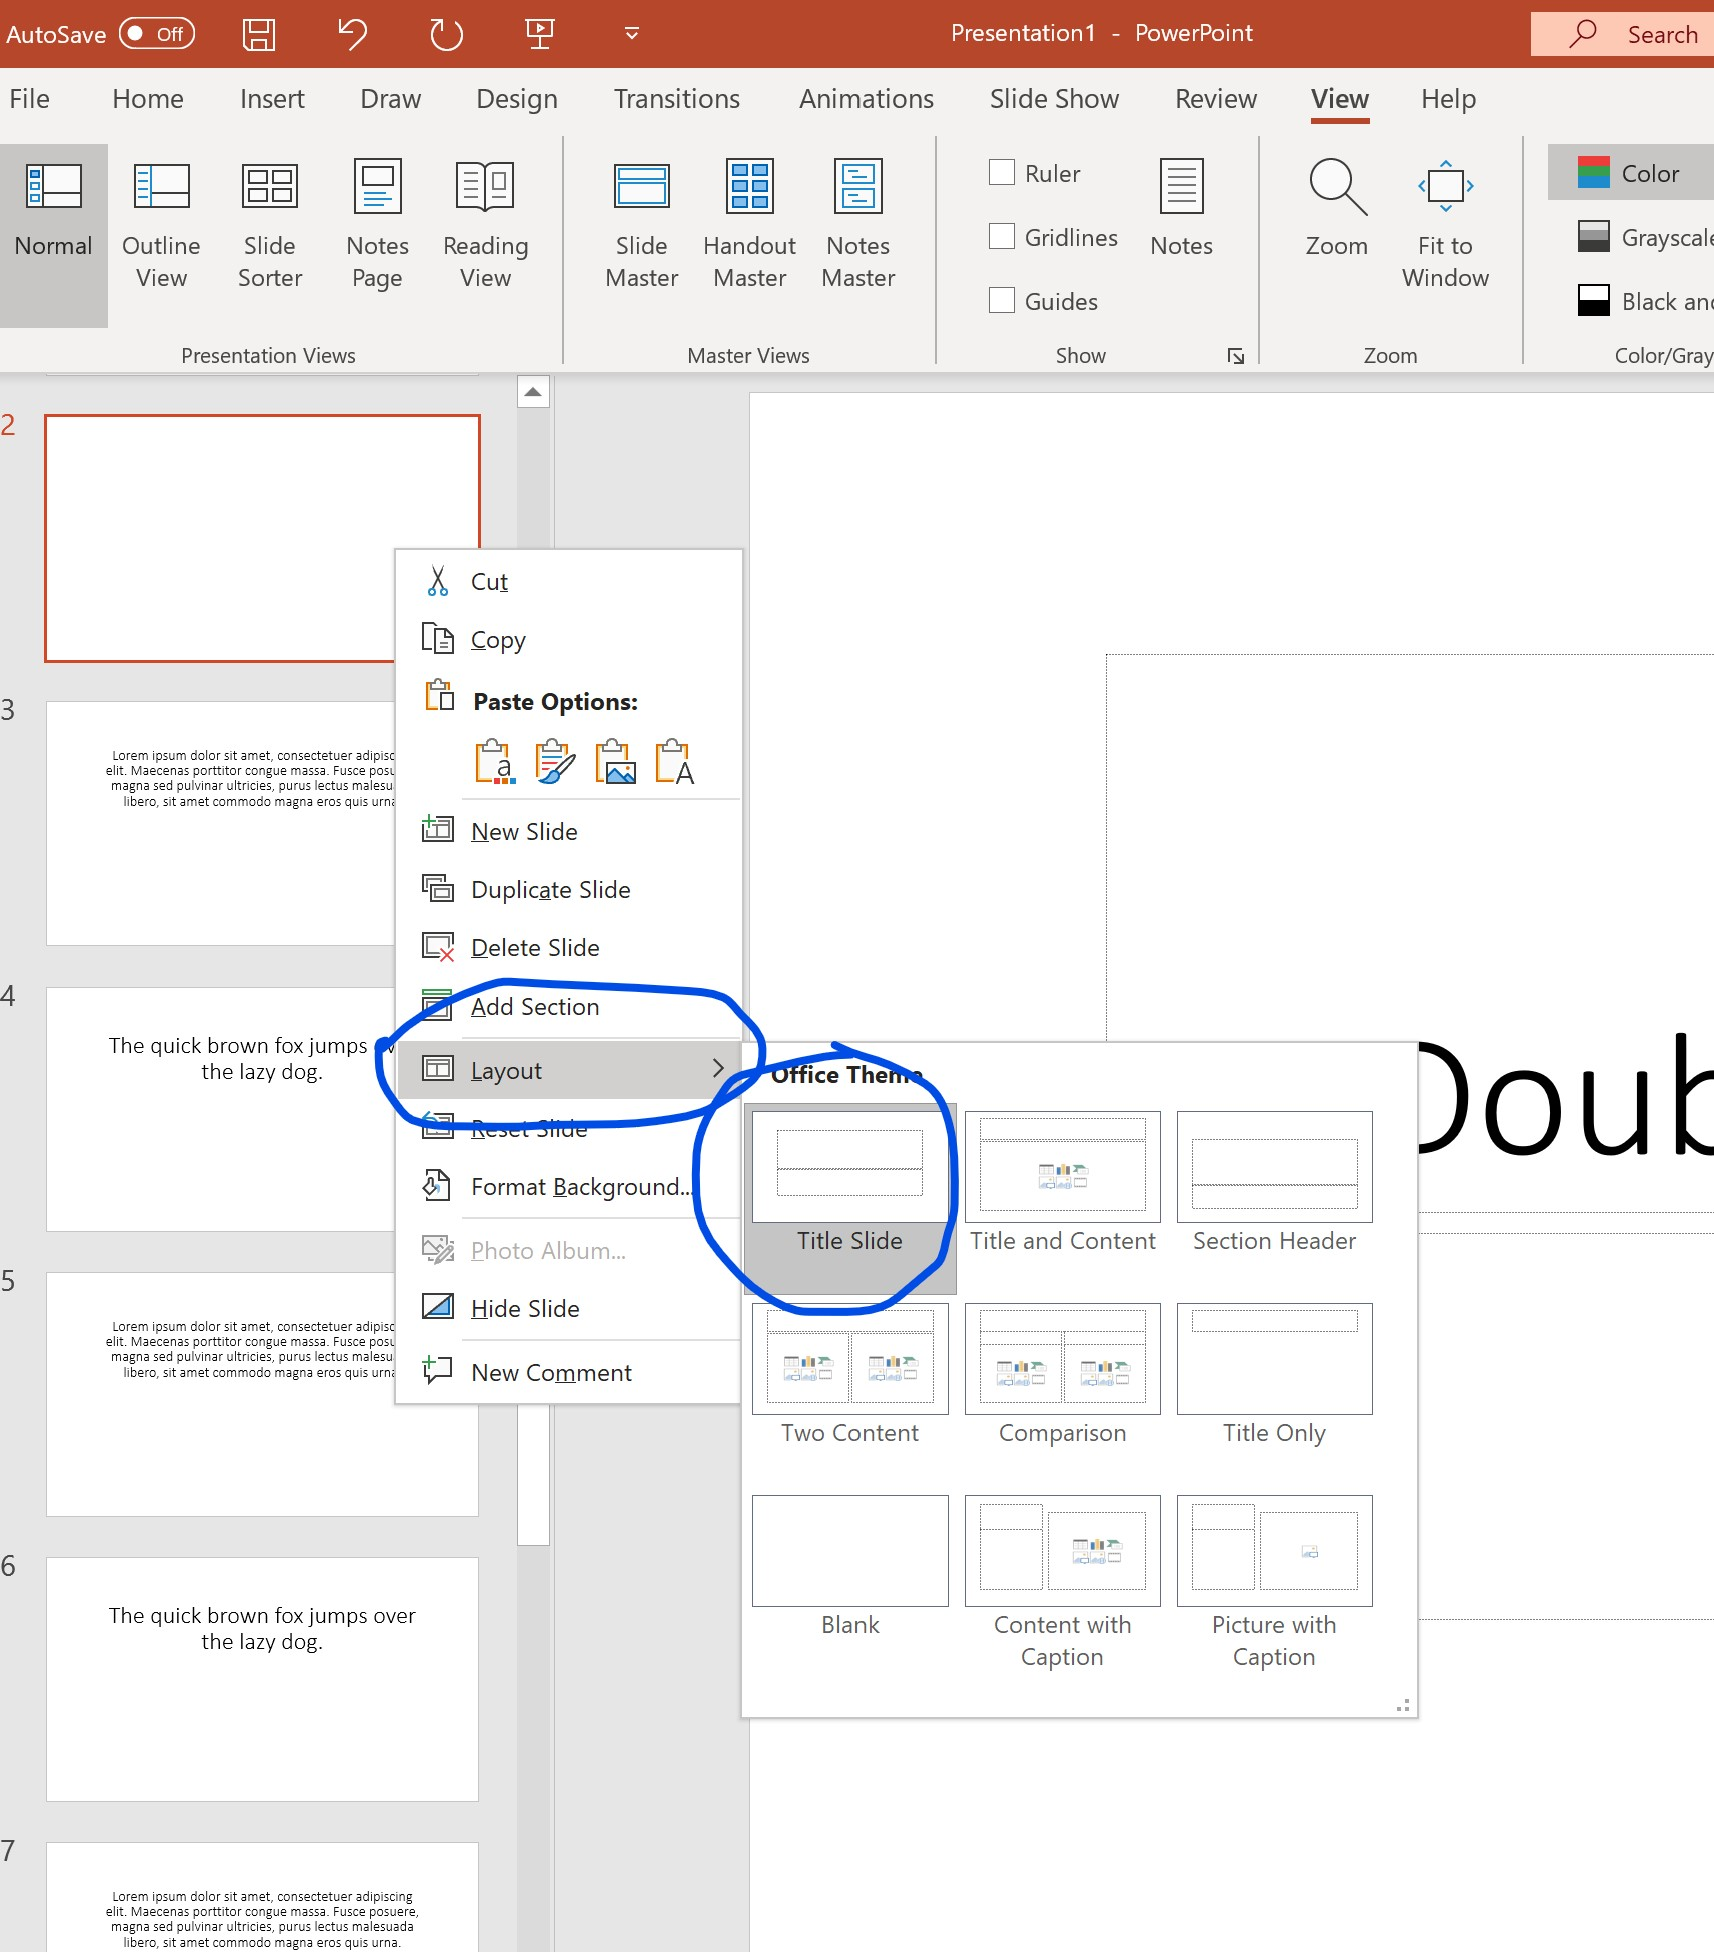 1. Microsoft PowerPoint - Create a new slide, select layout->Title Slide. Enter the title of the chapter you want. Keep repeating for every chapter.